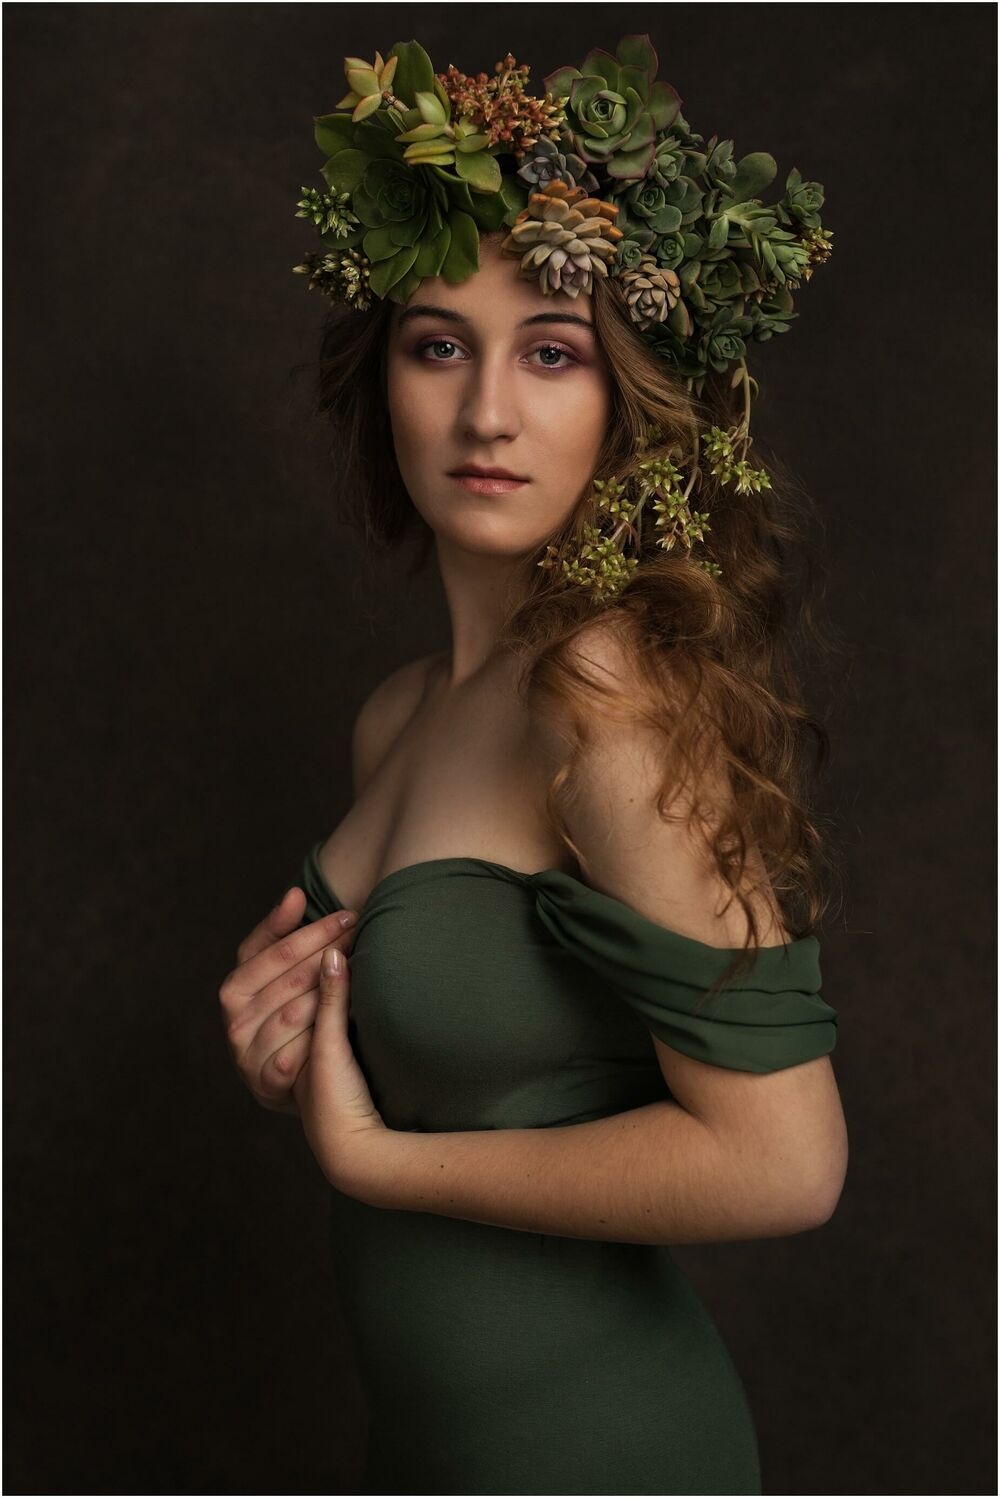 portrait of a girl in a succulent crown in a vintage painterly style